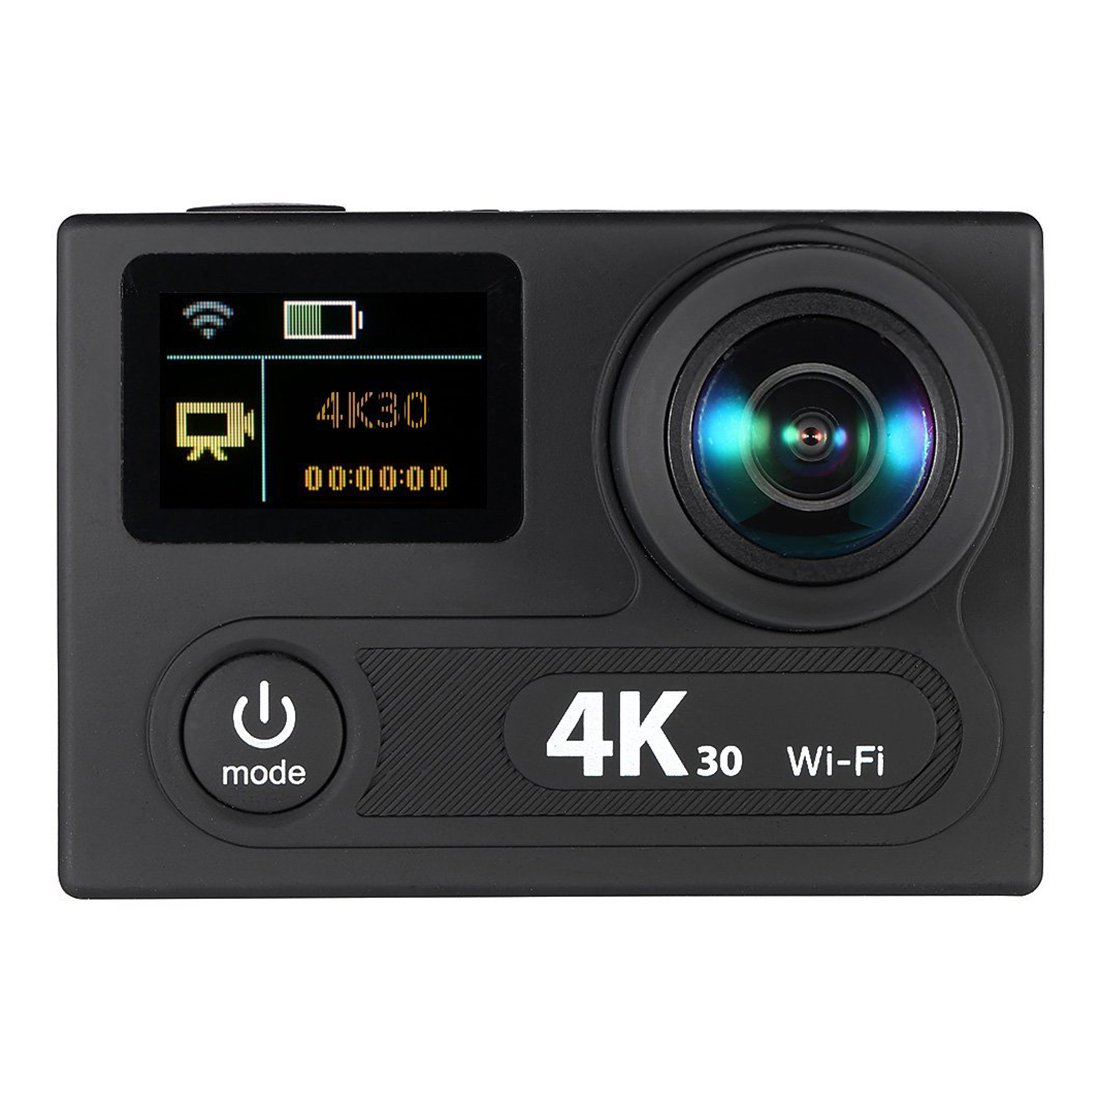 SODIAL(R) 2inch Dual Screen LCD Sports Action Camera Ultra HD 360 VR Play Wifi 4K 30fps 1080P 60fps 12MP 170 Wide-angle for Multimedia Interface Output Waterproof 30M with Remote Control